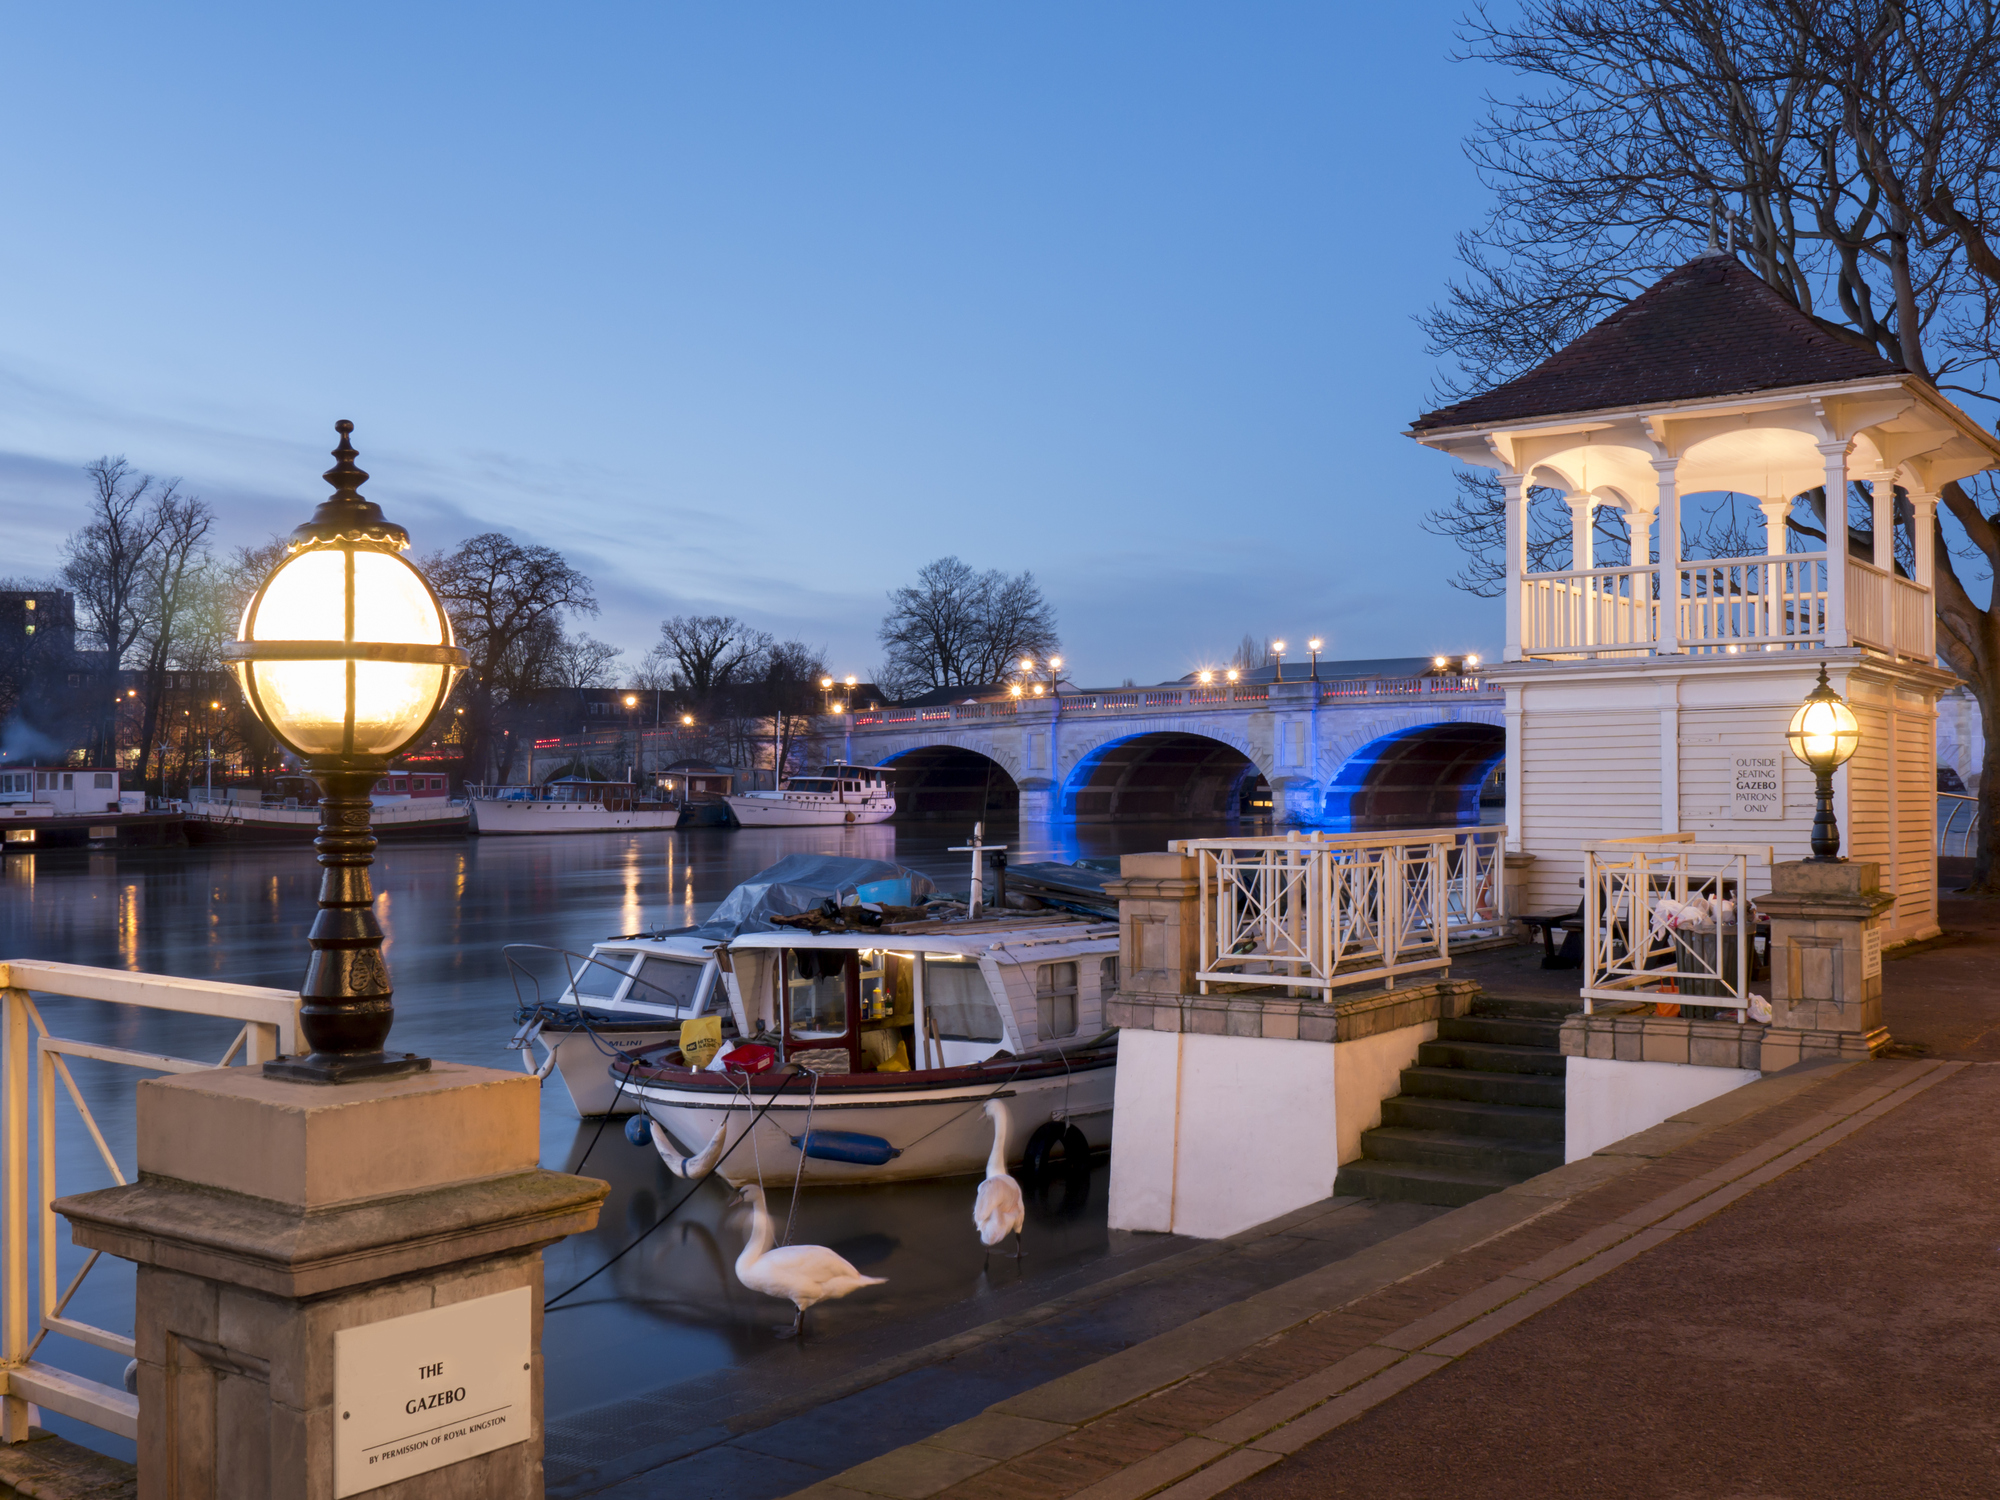 5 things to do when you visit Kingston upon Thames